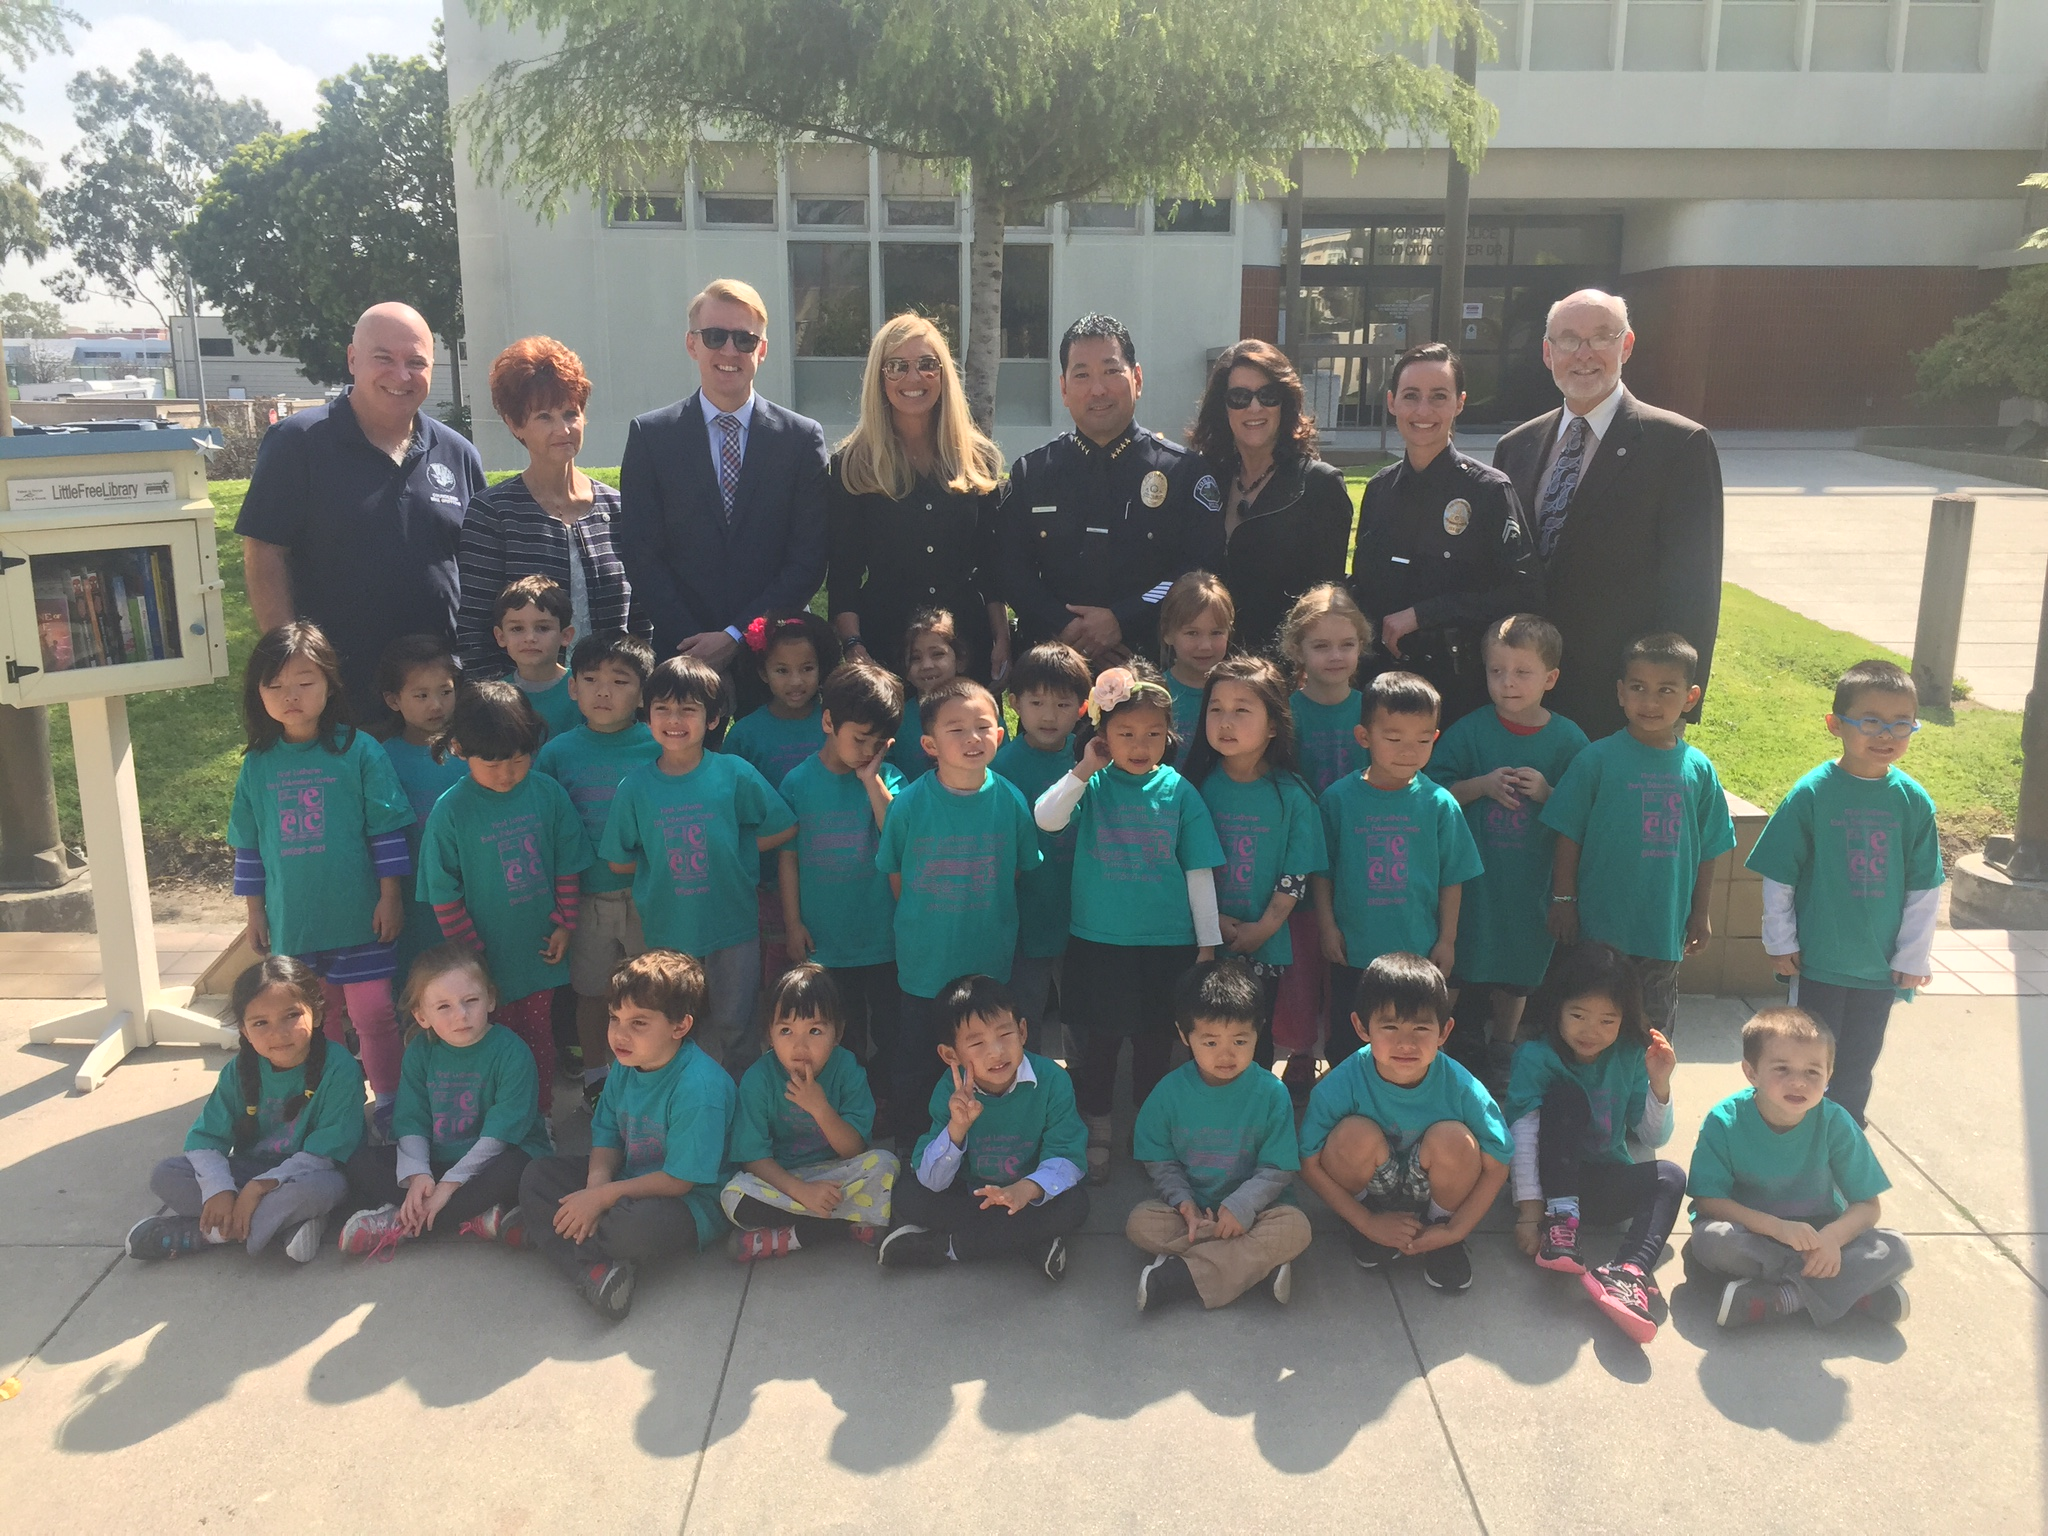 A ribbon cutting event and the reading of a story to a class of 35 pre-schoolers from First Lutheran school in Torrance took place Monday morning.